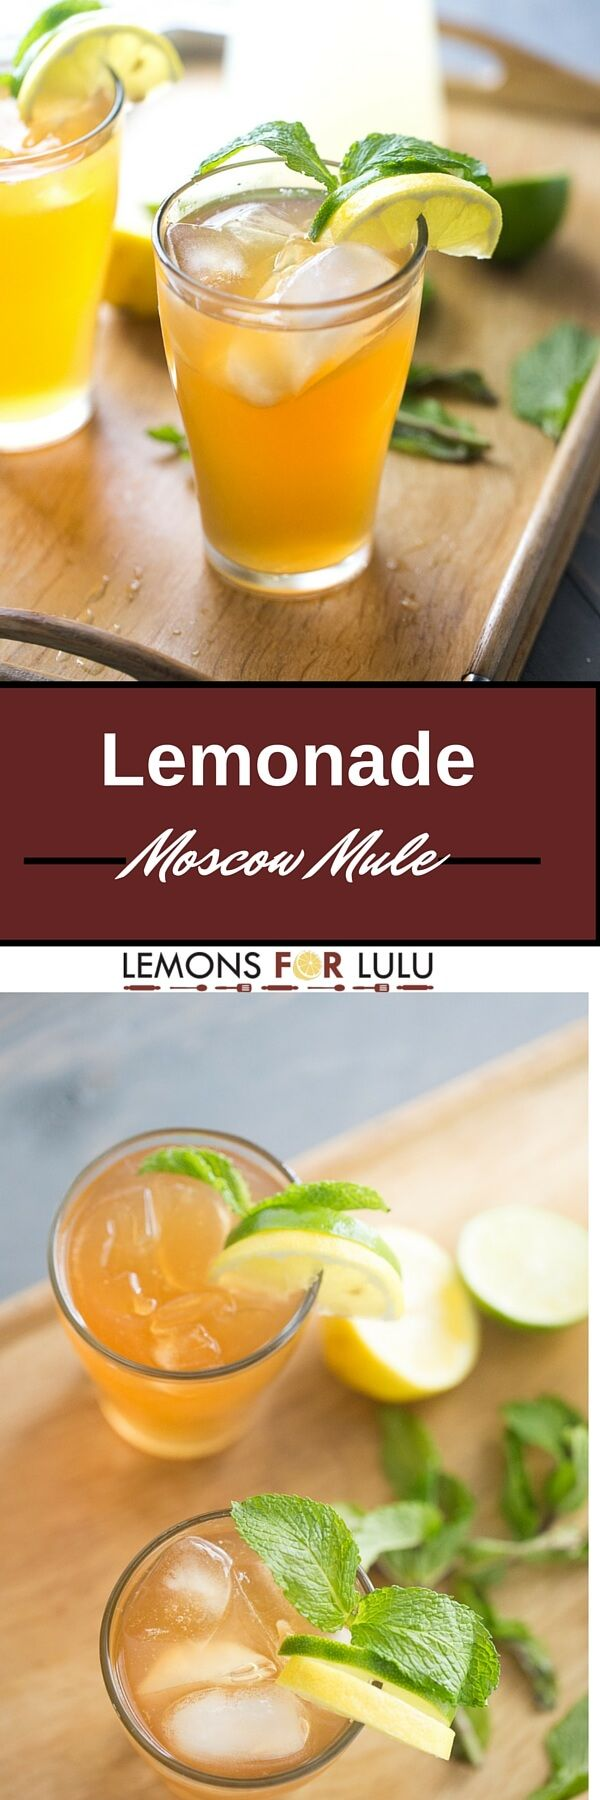 Lemonade Moscow Mule Cocktail | Recipe | Summer, Dr. oz and 1""